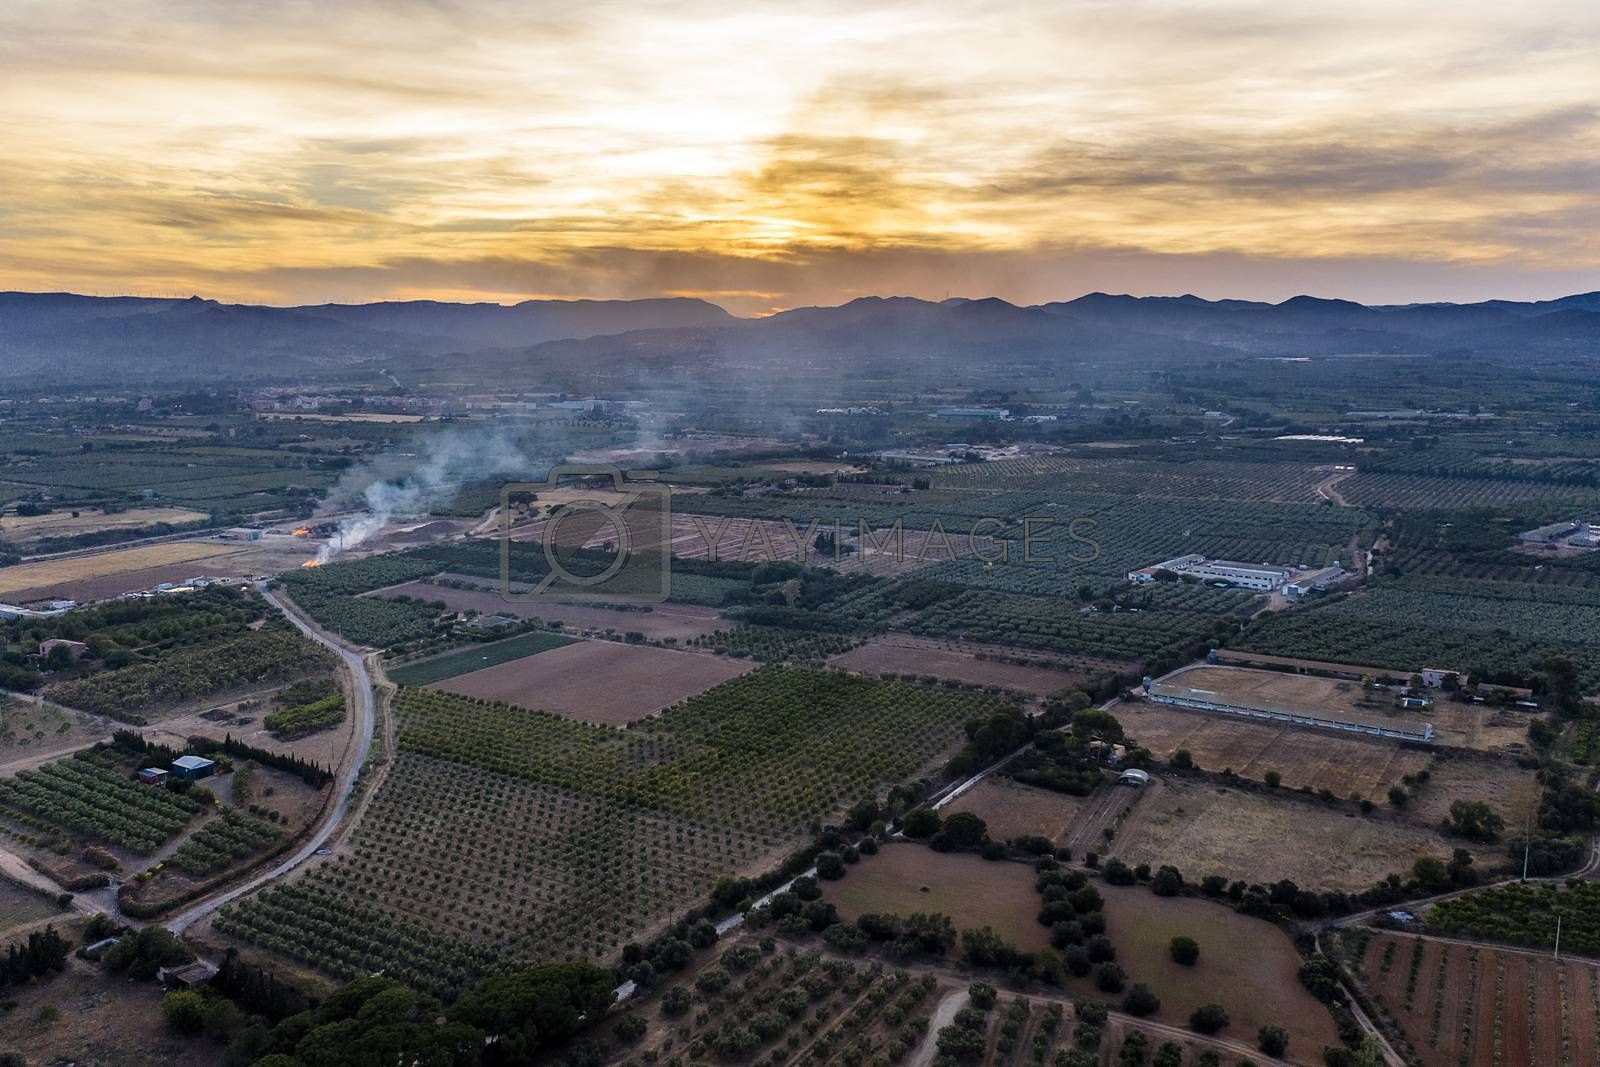 top view of fields and plantations at sunset near of the mountains in Tarragona, green field agriculture industry aerial view